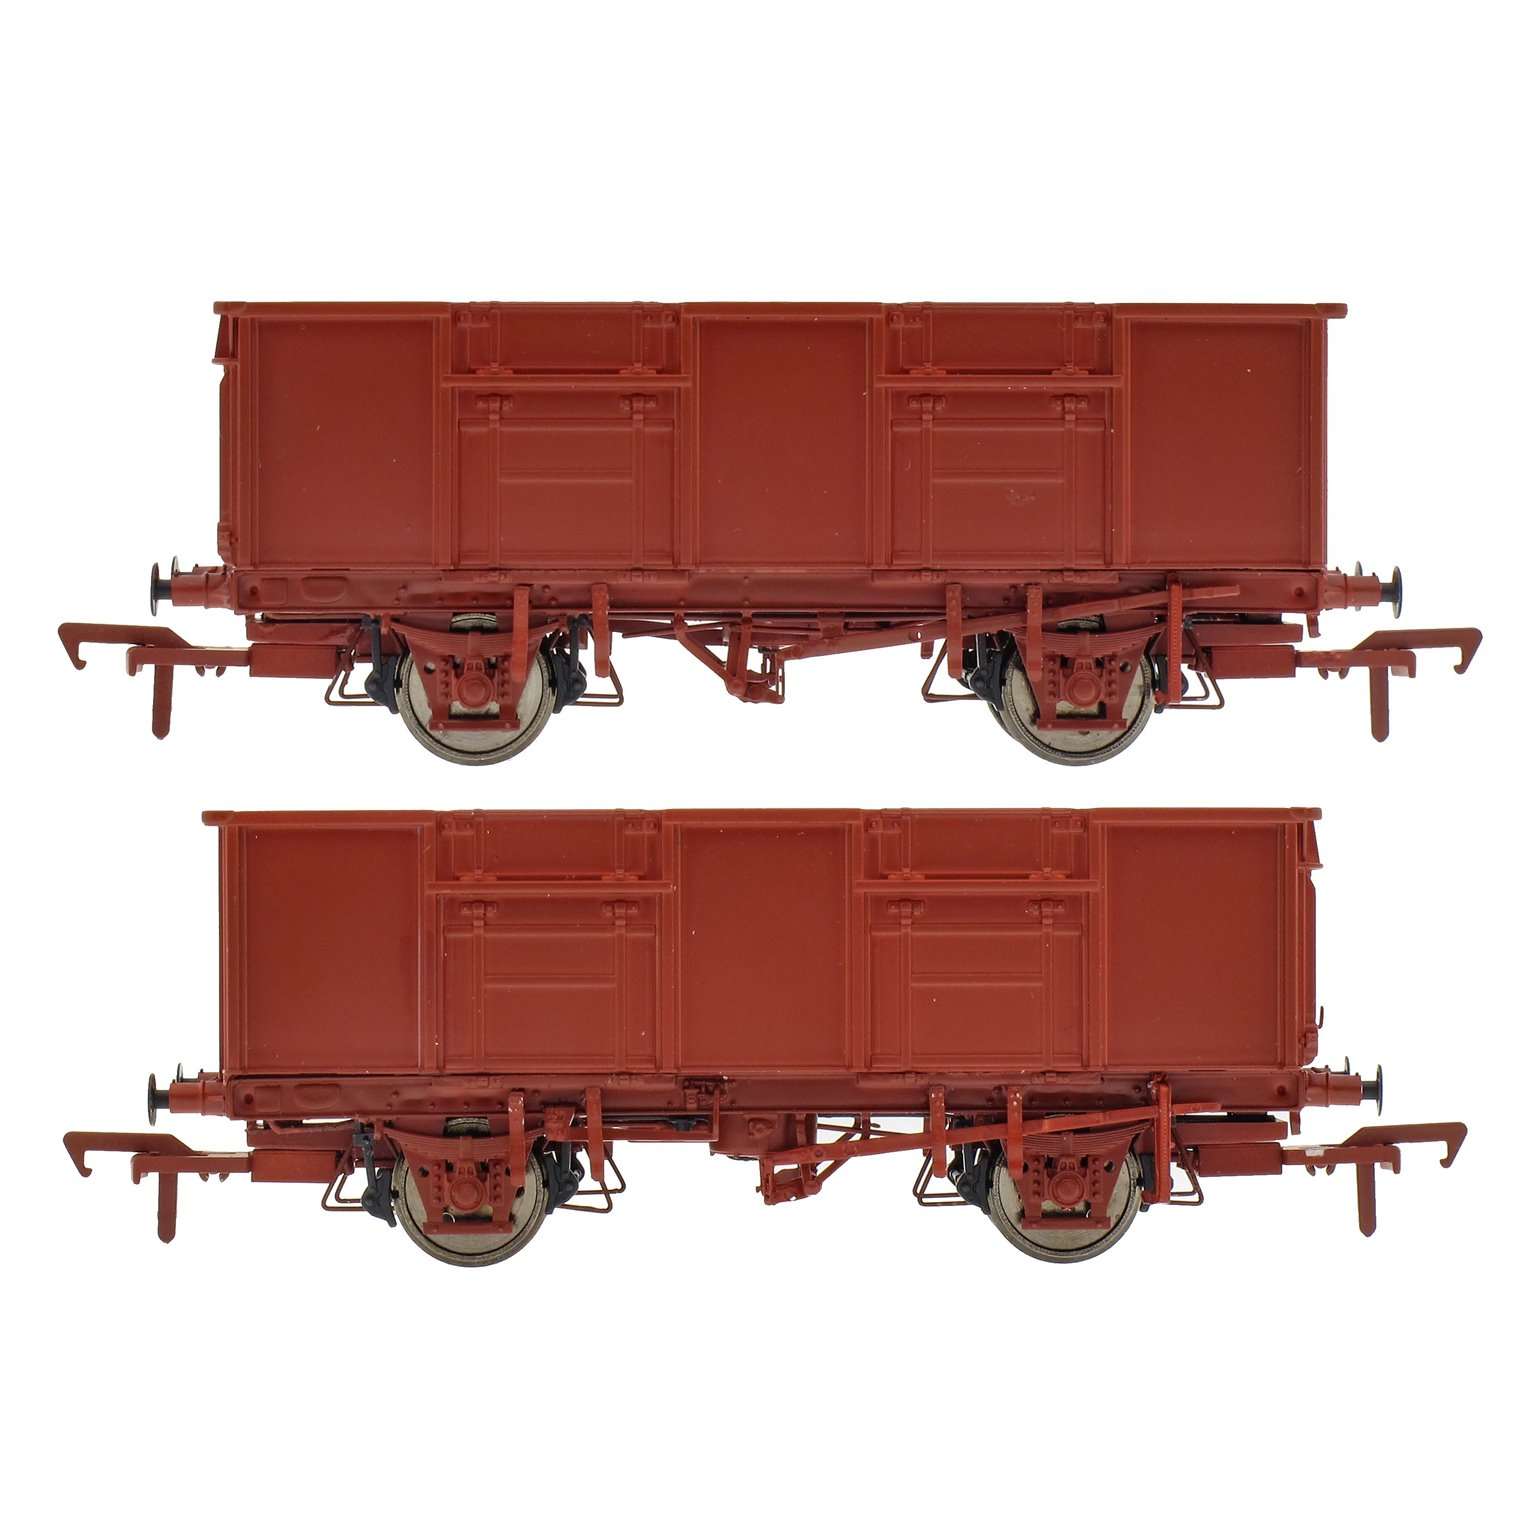 BR 21T MDV / PMV Triple Wagon Pack in MC Metals Livery